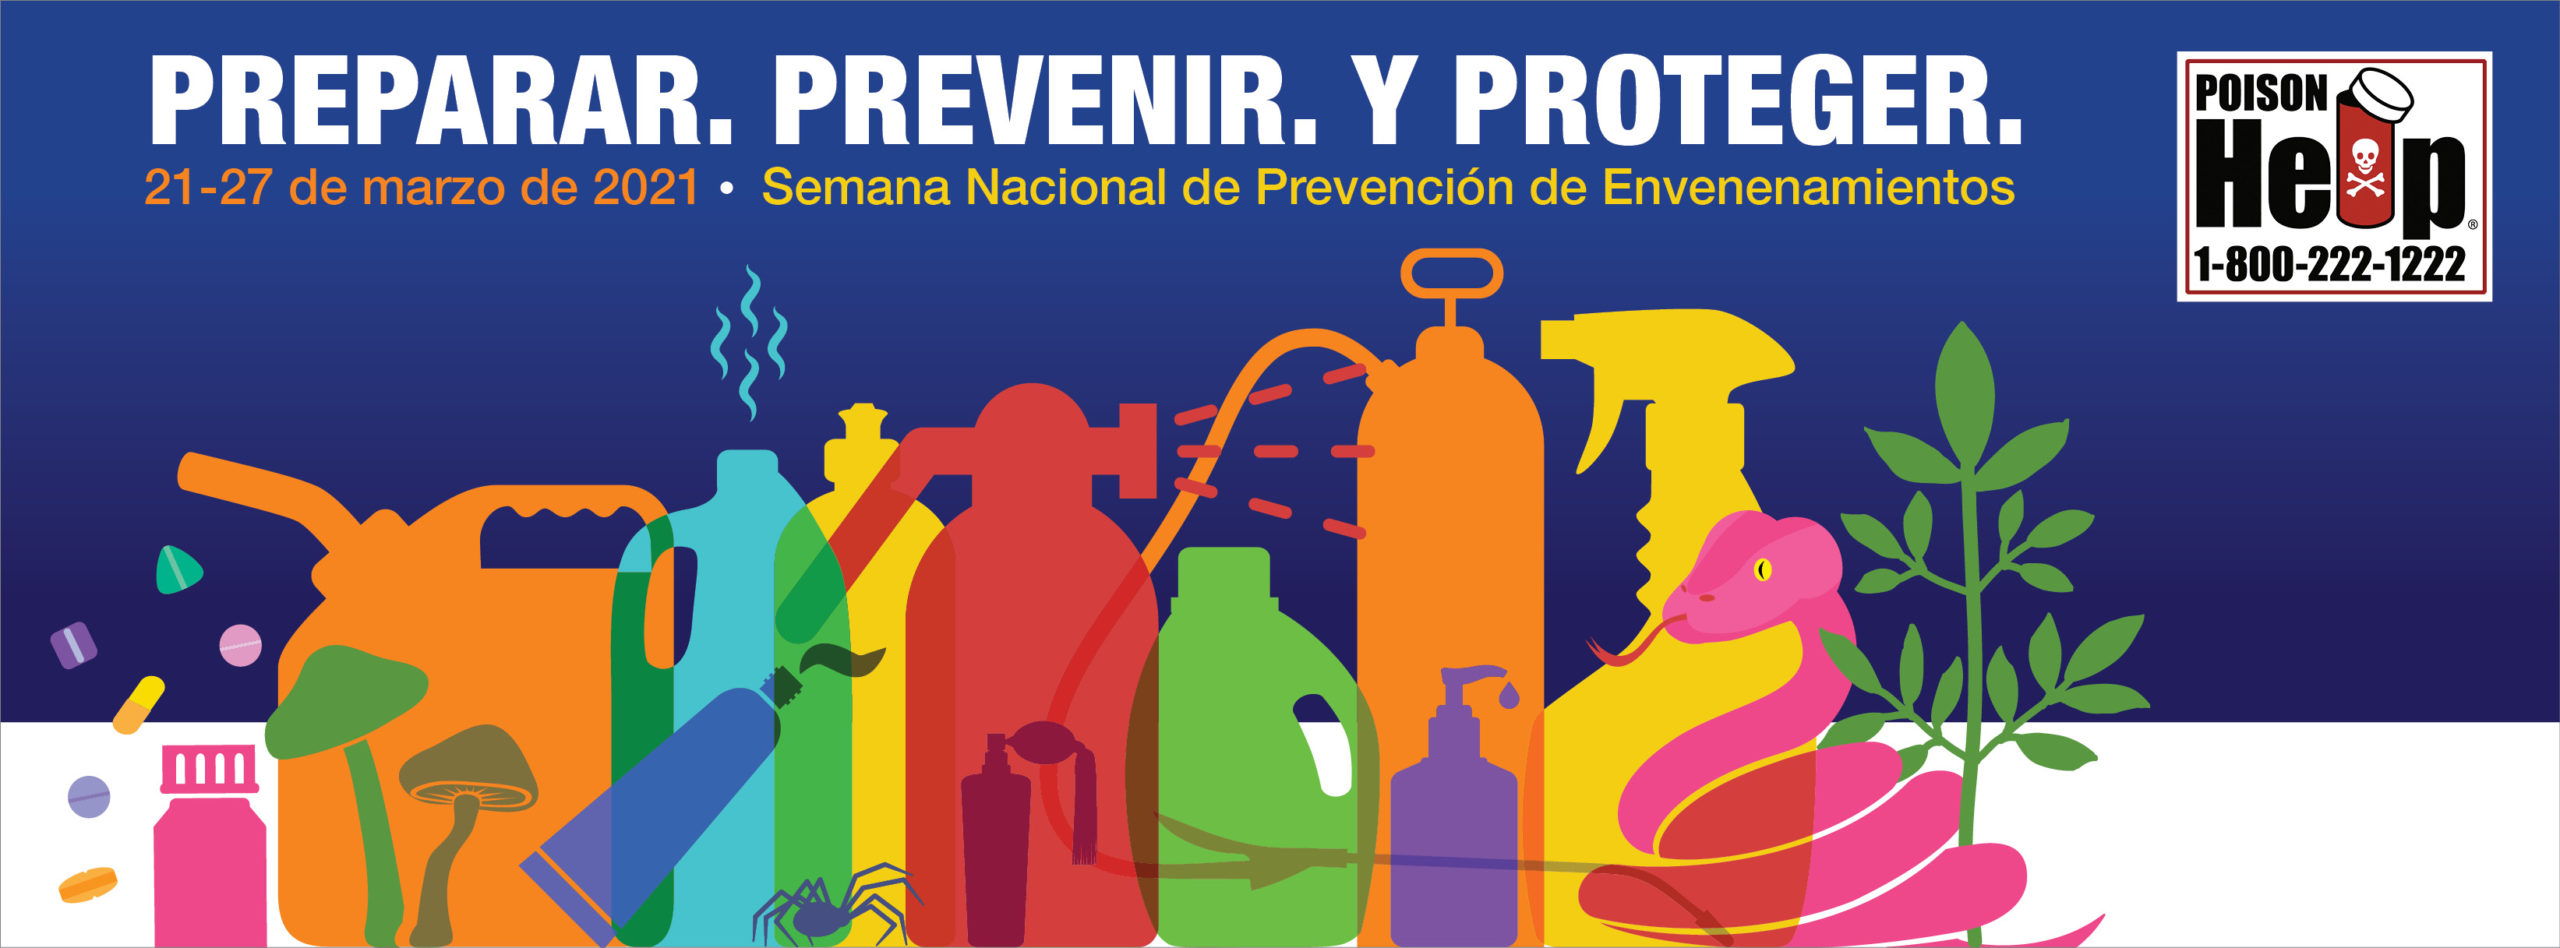 2021 AAPCC National Poison Prevention Week Designs Spanish FINAL Main Banner